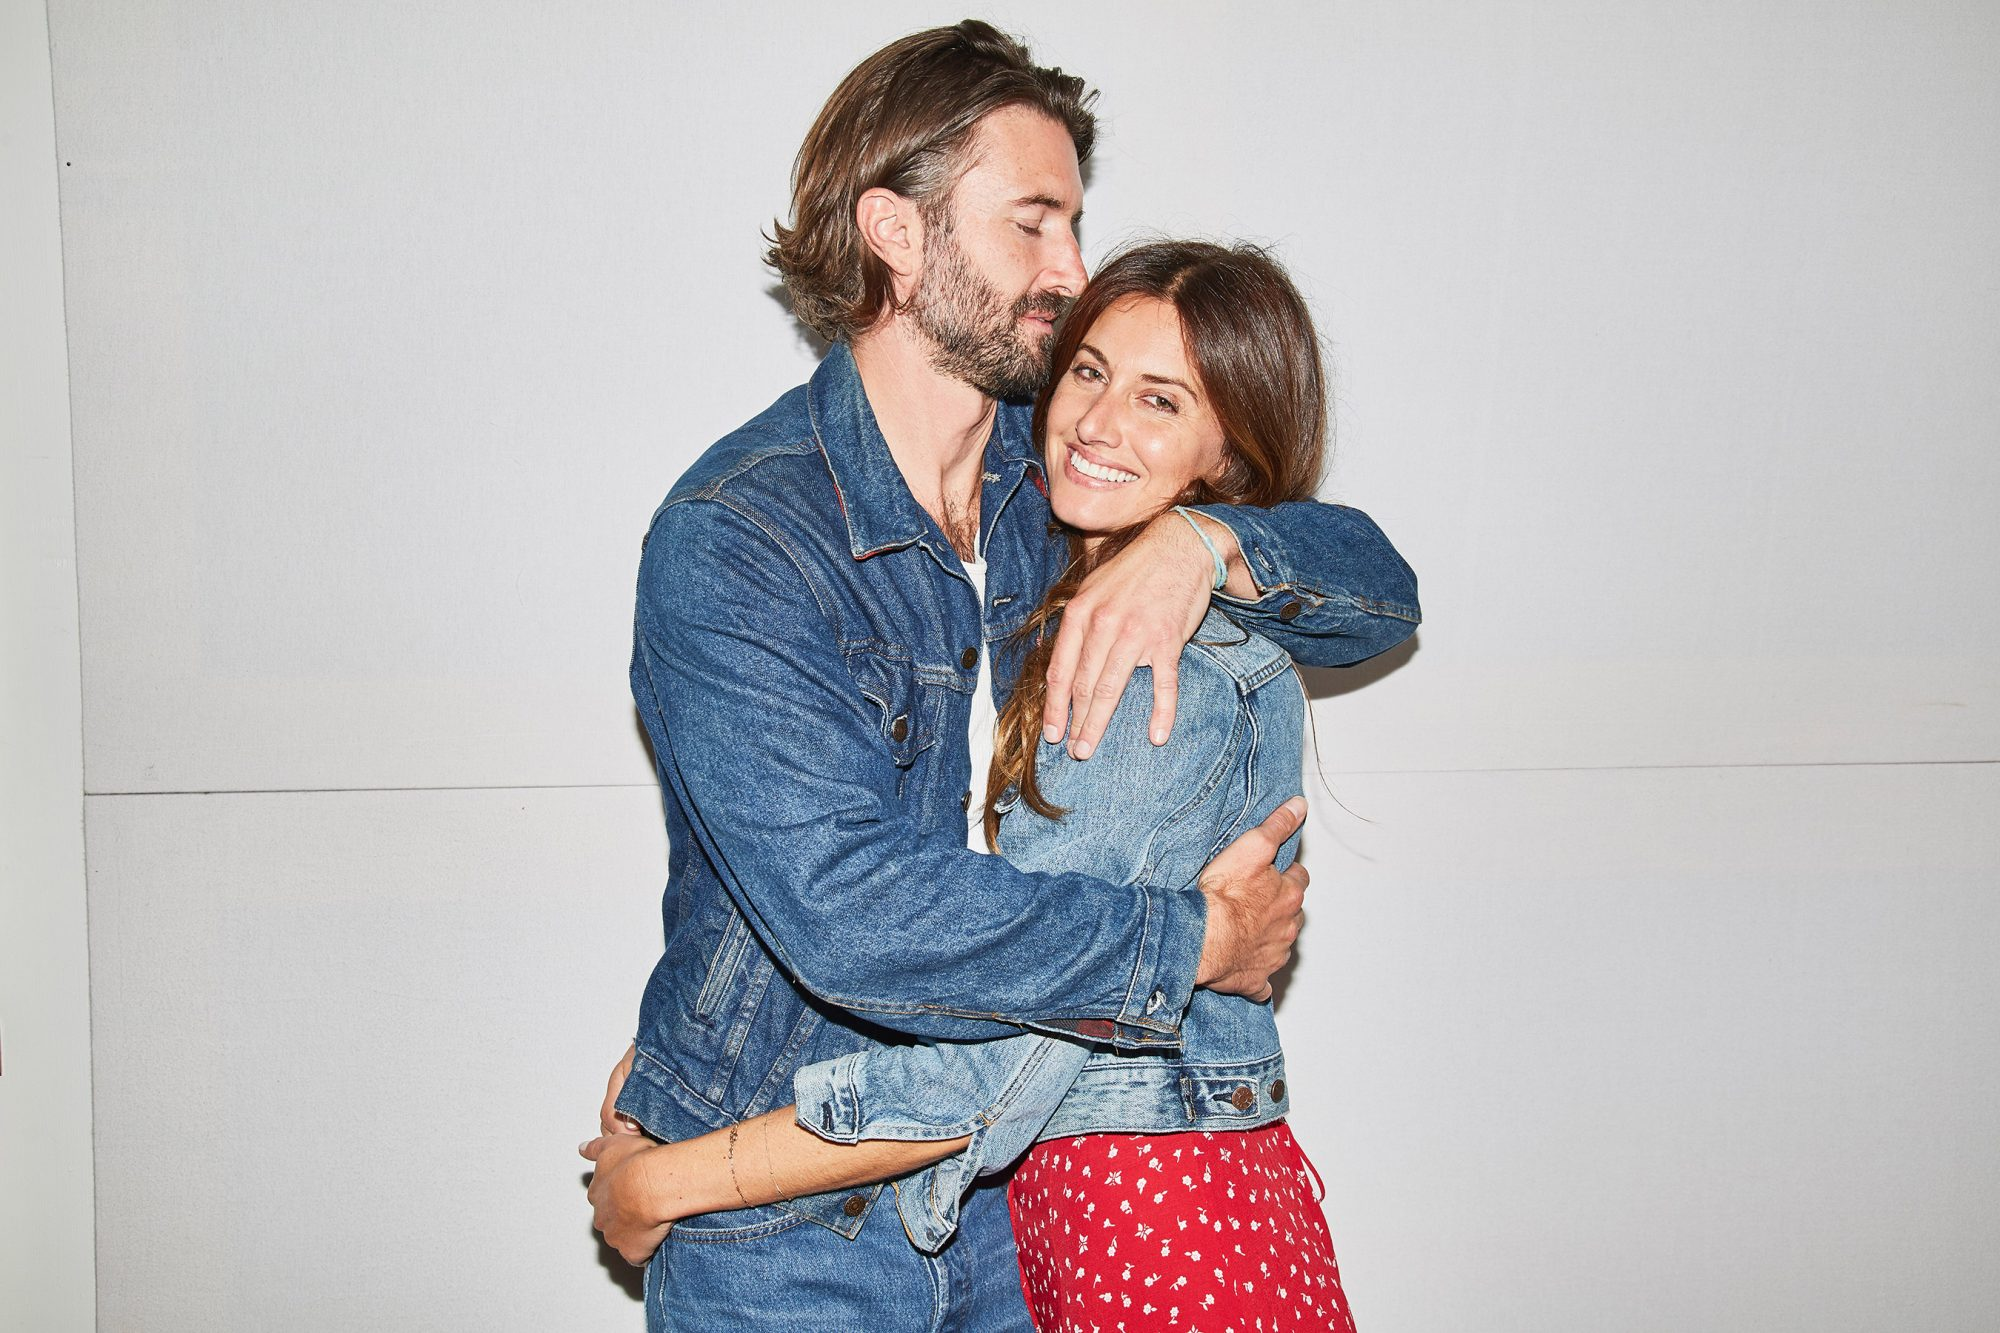 Brandon Jenner and Cayley Stoker